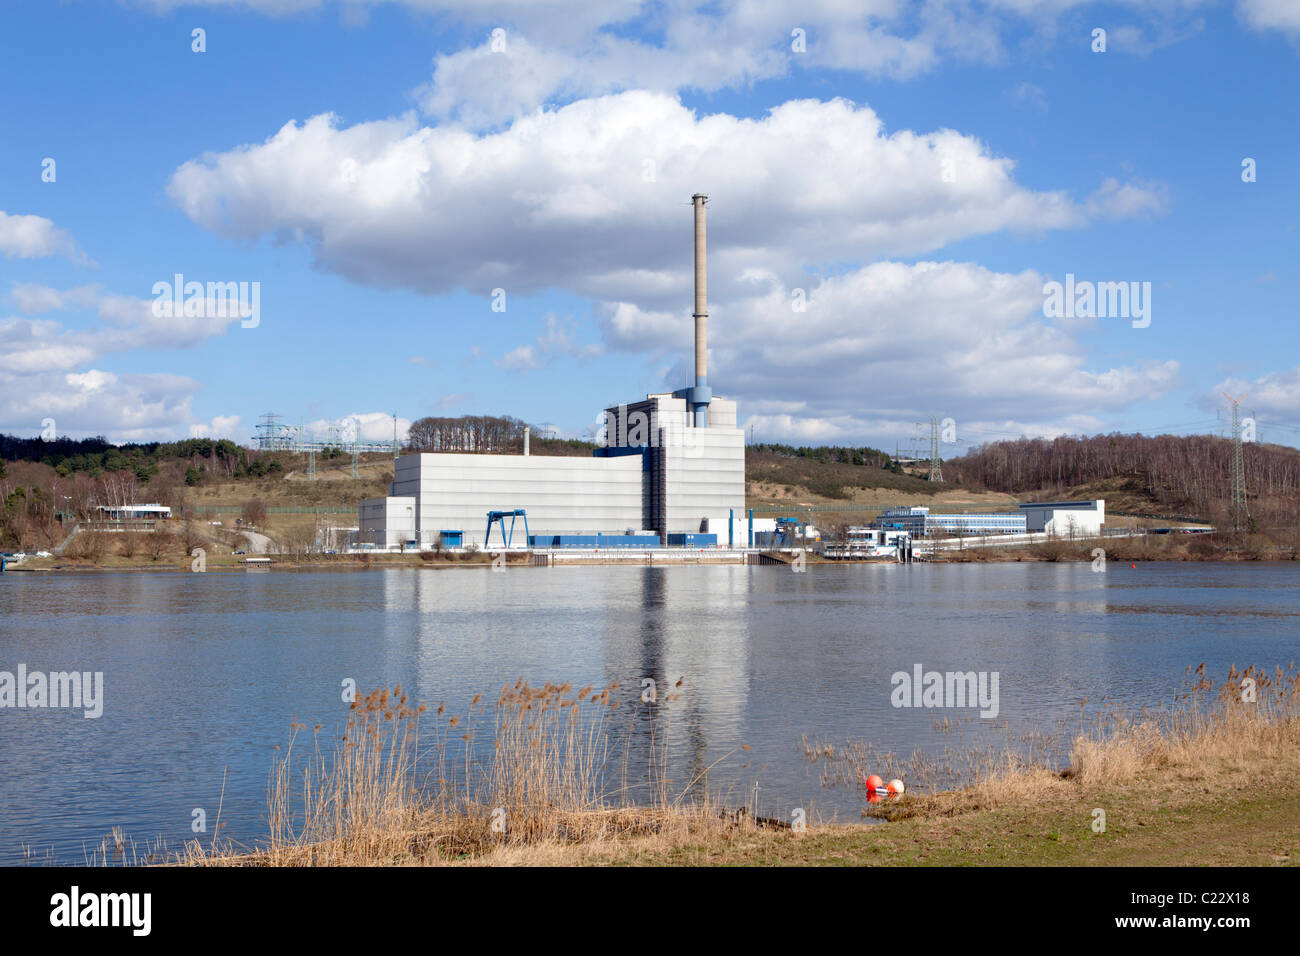 nuclear power station Kruemmel near Geesthacht, Schleswig-Holstein, Germany Stock Photo